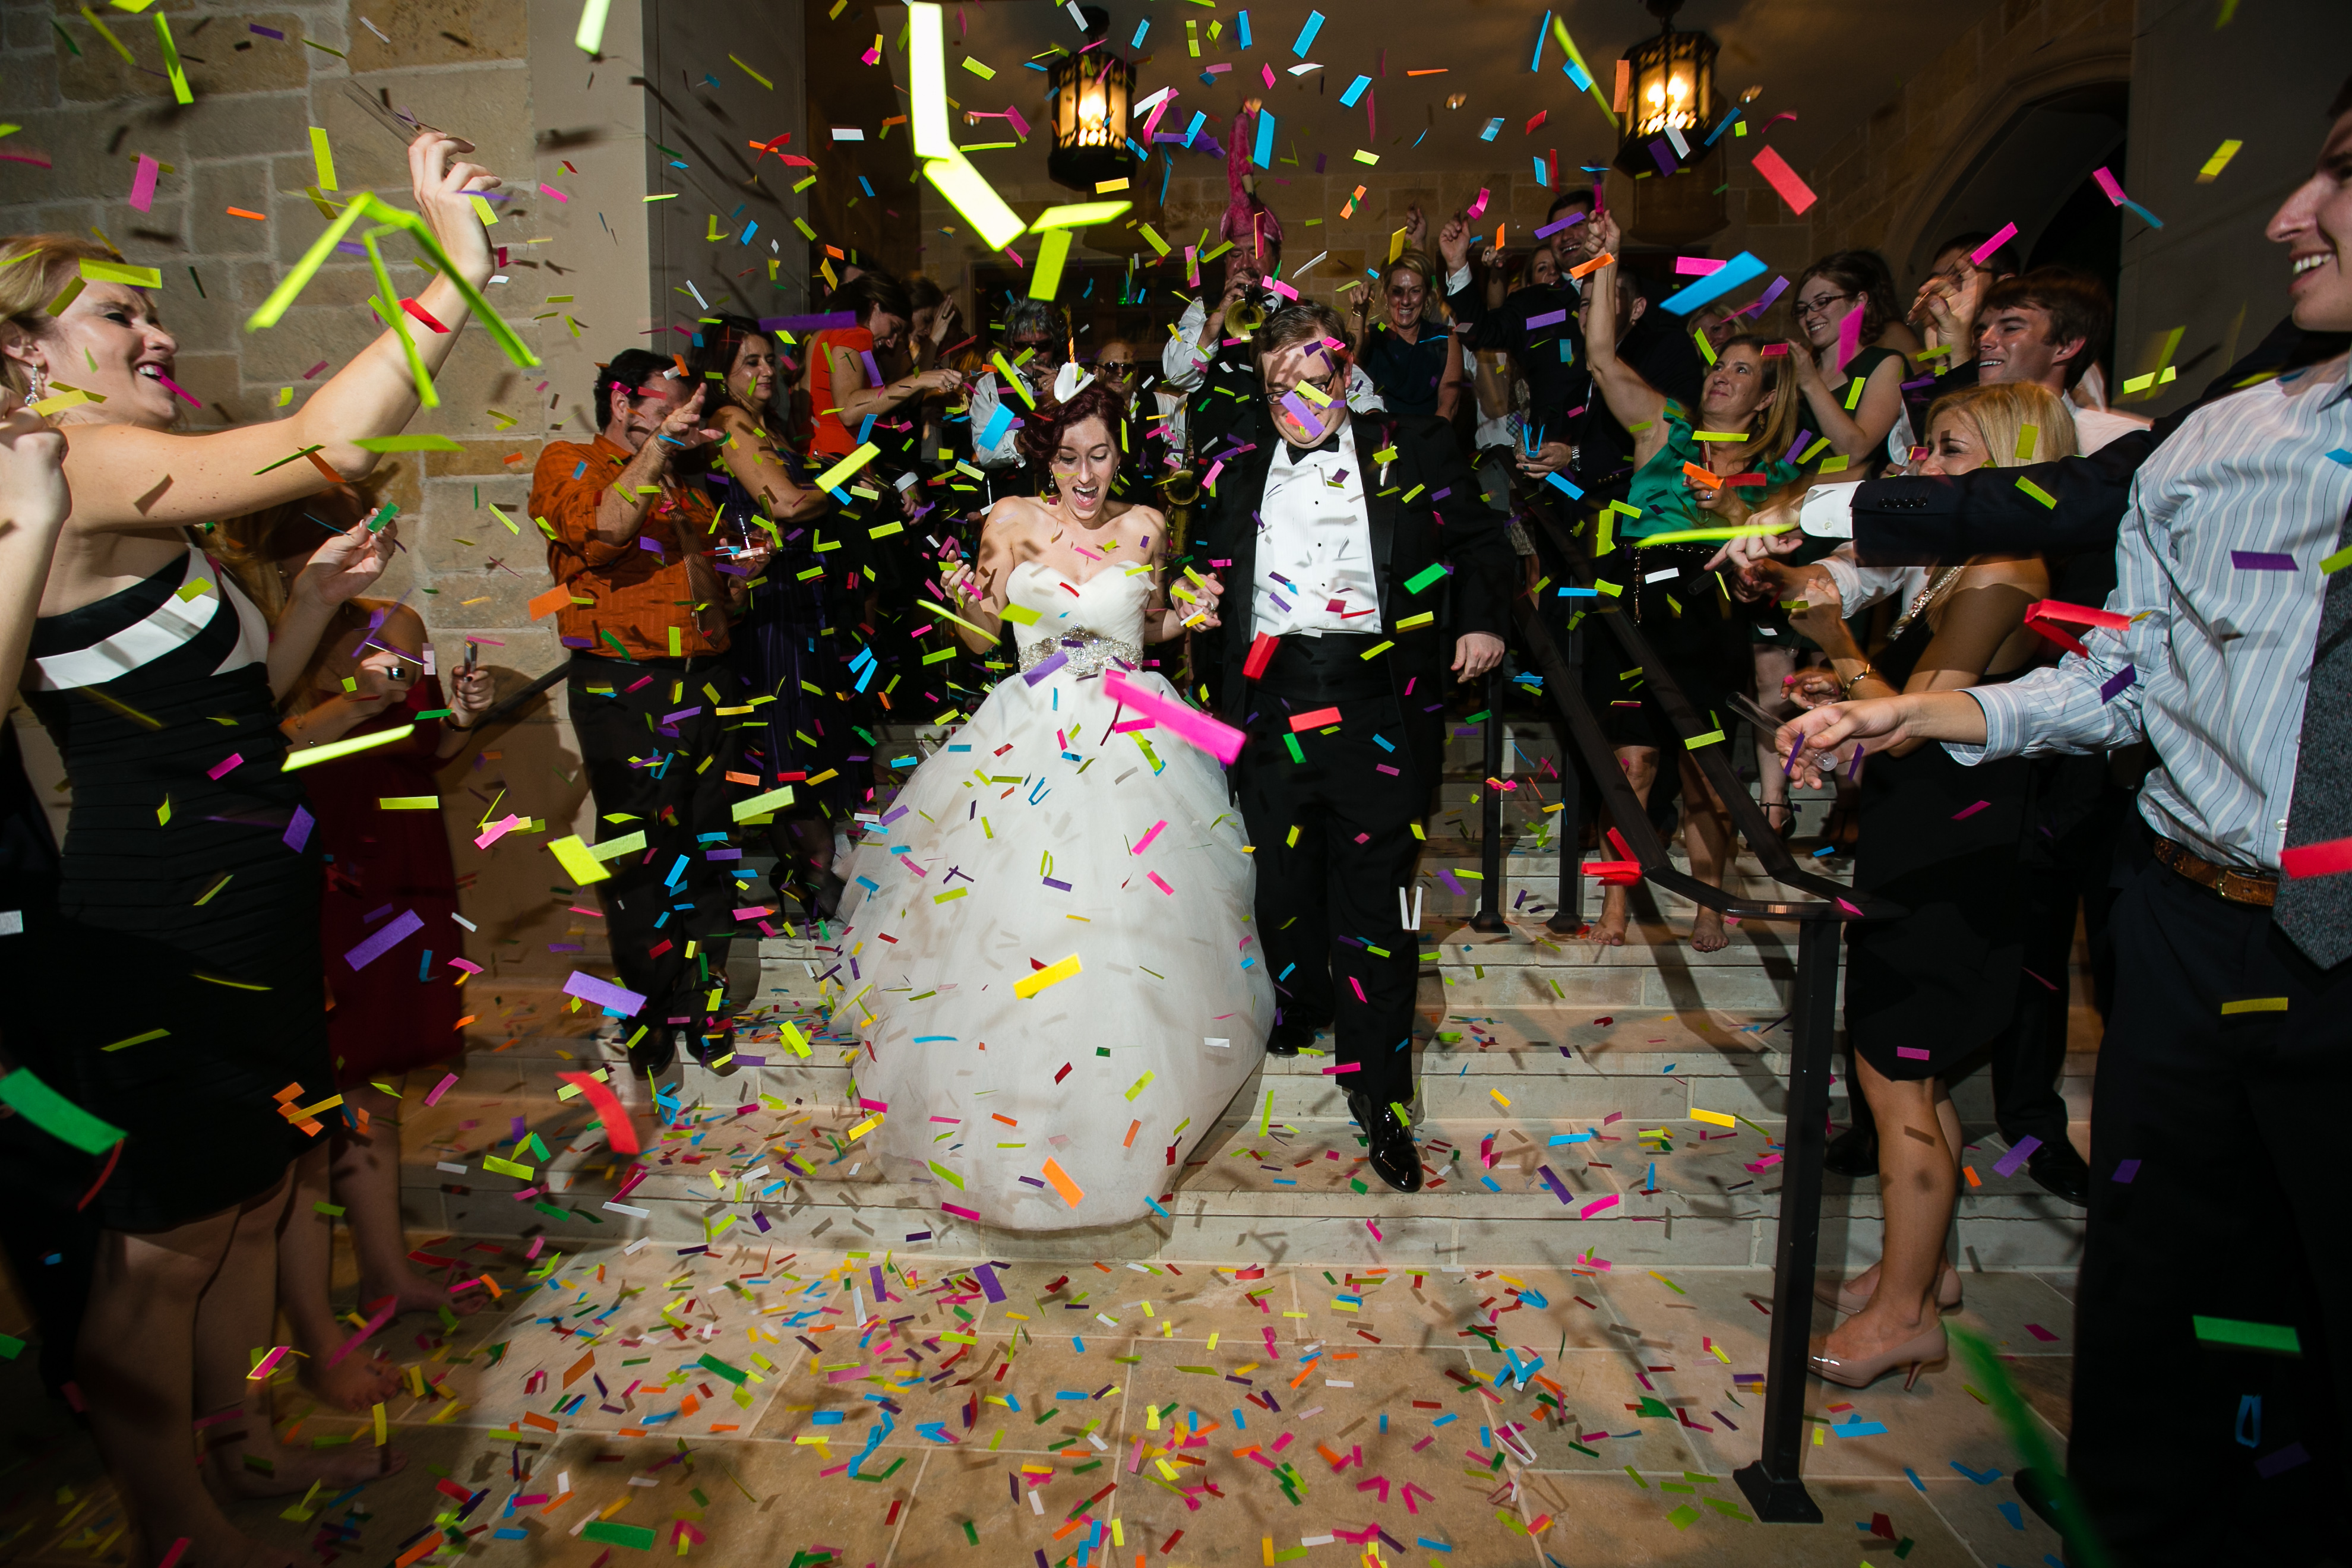 Confetti Canon Wedding New Years Eve party colored white gold silver confetti 0735-sam+stewert